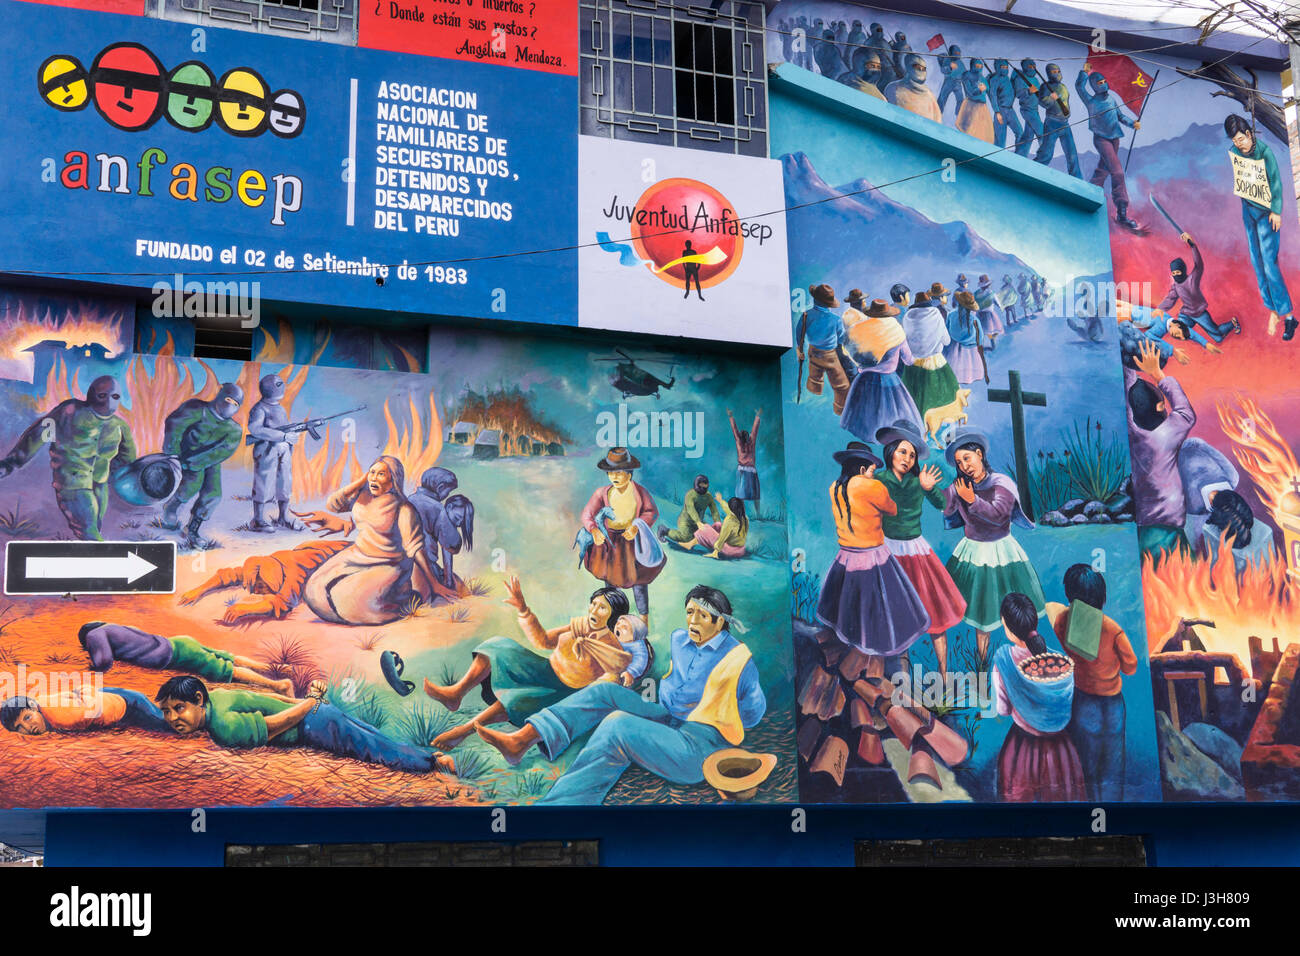 ANFASEP National Association of Relatives of Kidnapped, Detained and Disappeared Peru in Ayacucho city, Peru. - Stock Image